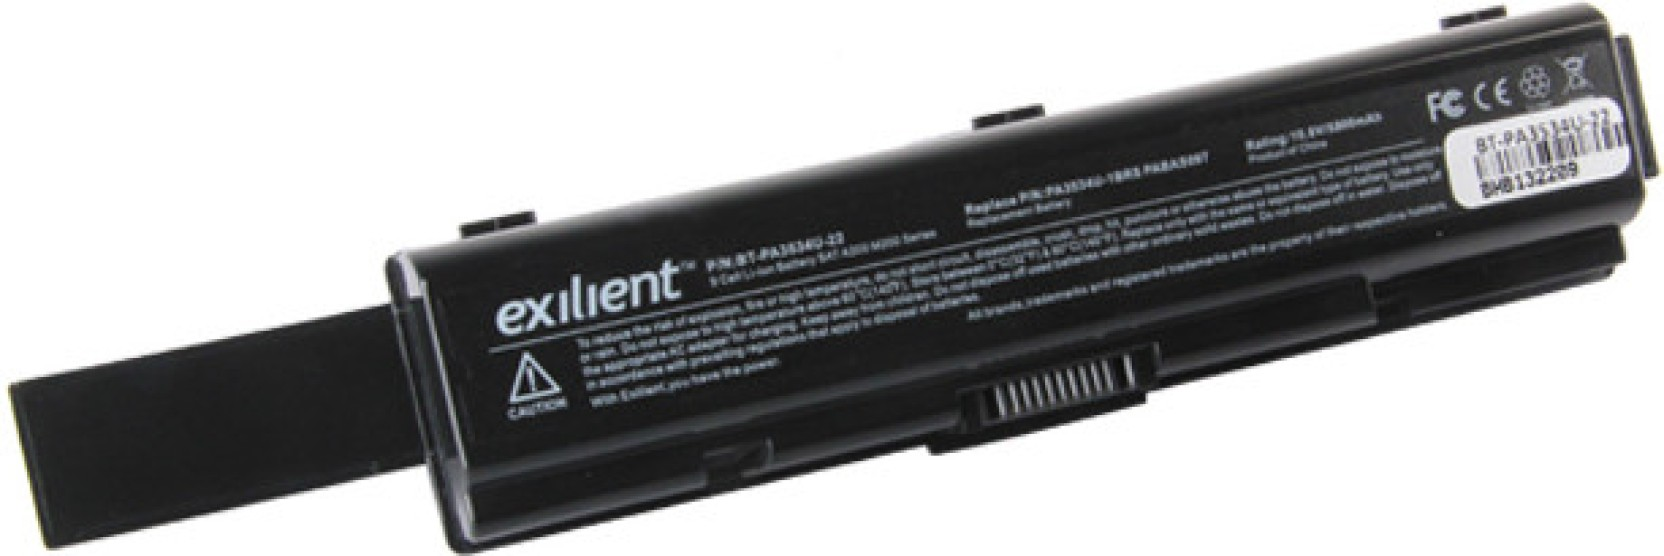 Exilient Toshiba A200 A300 A500 9 Cell Laptop Battery Baterai M200 A205 L200 Pa3534 Pa3535 Black